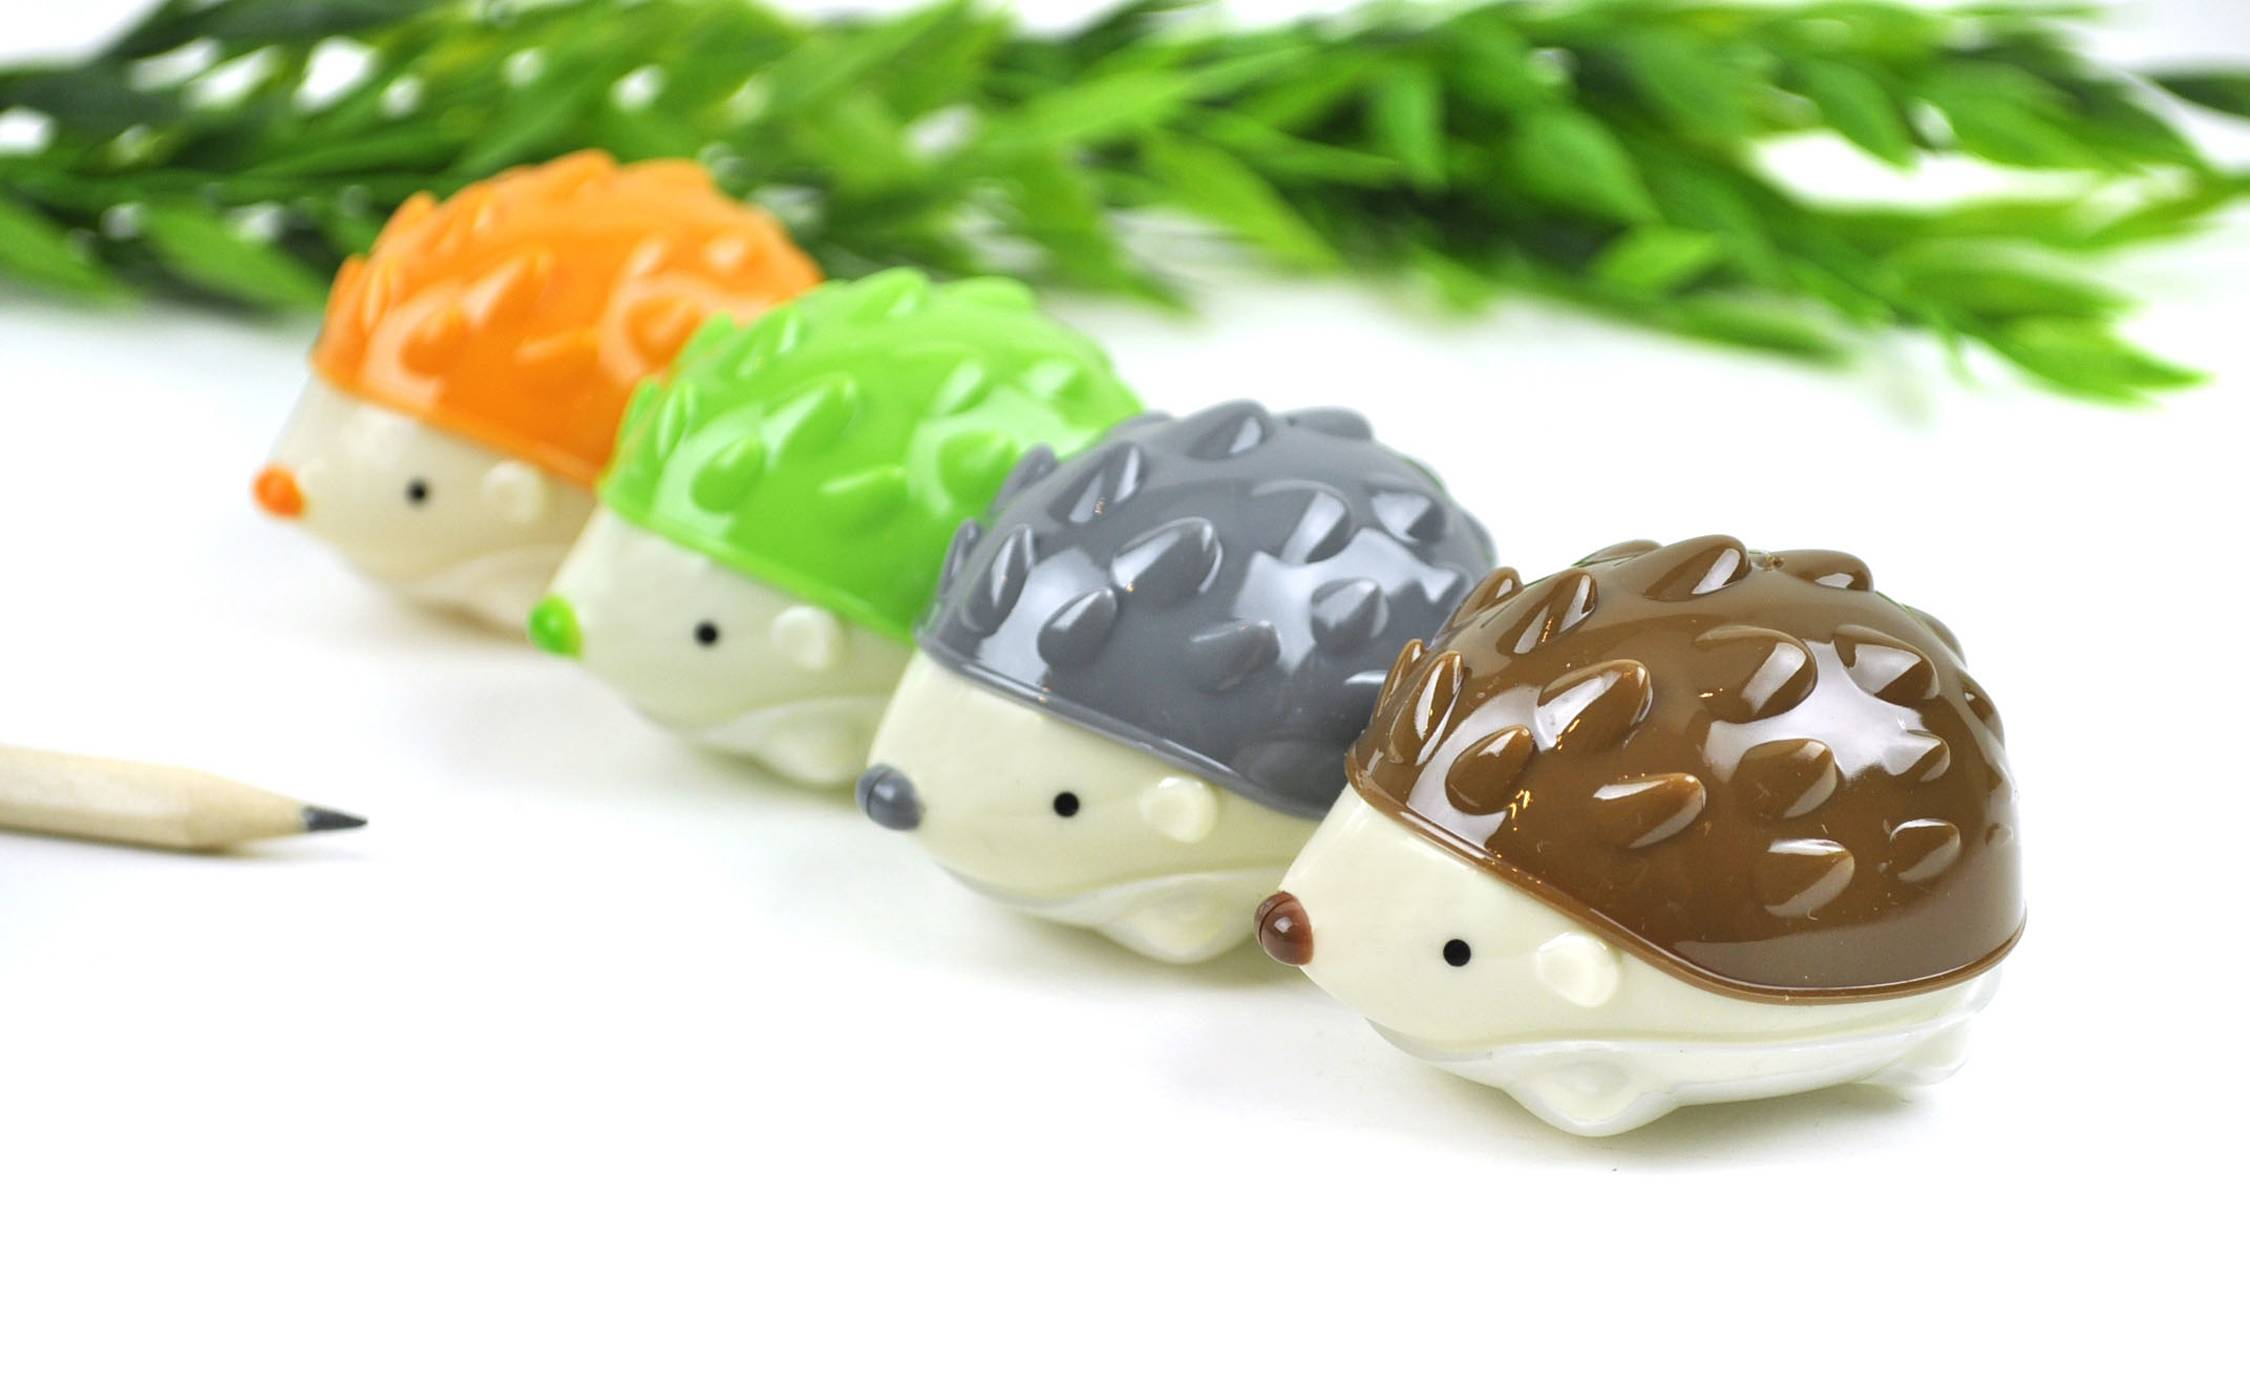 Hedgehog pencil sharpeners